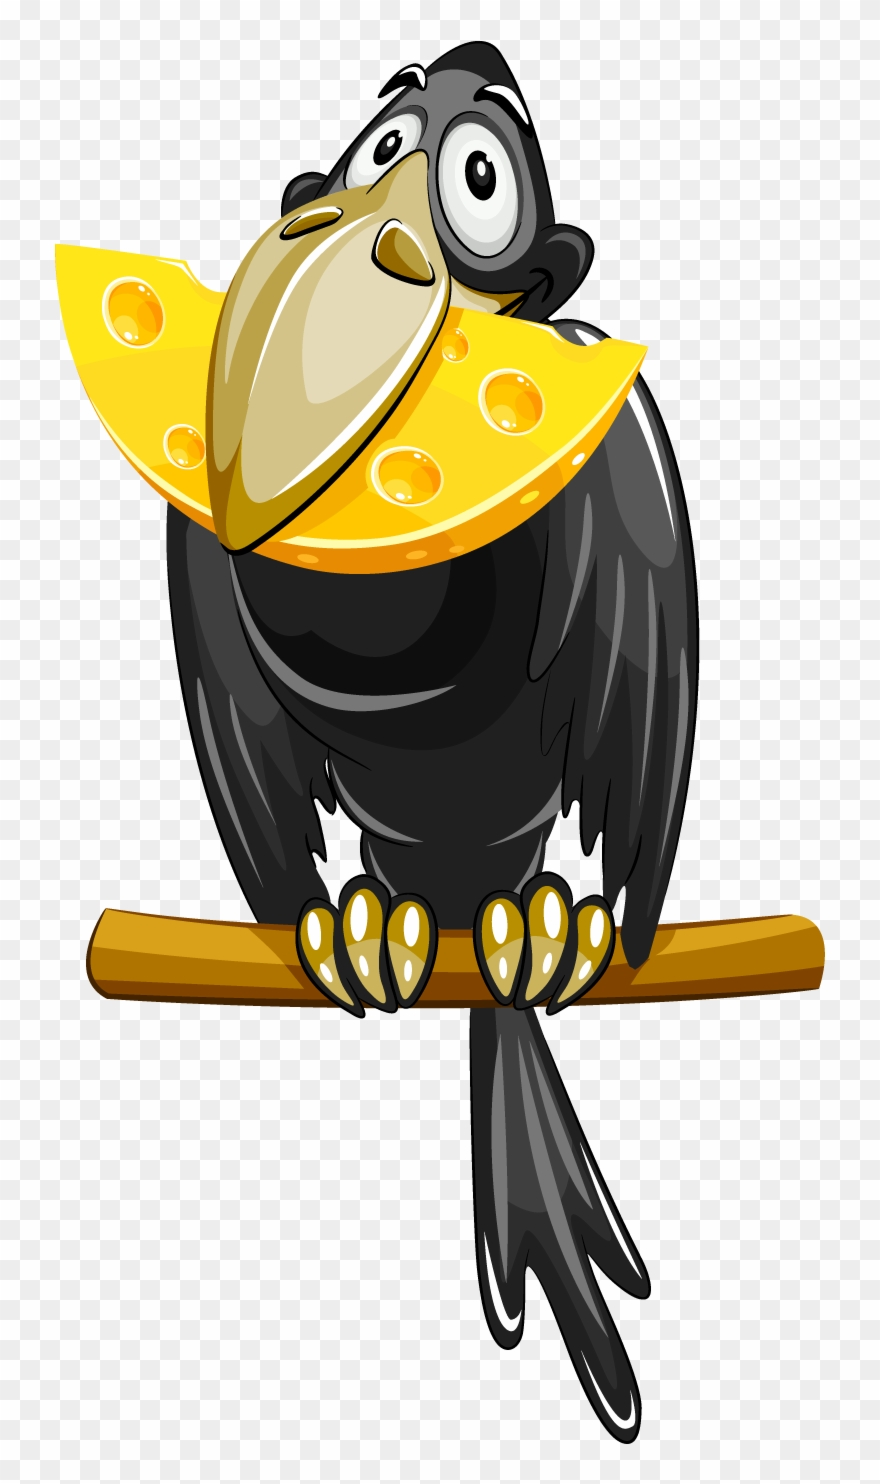 The surface pro bro. Crow clipart cheese clipart